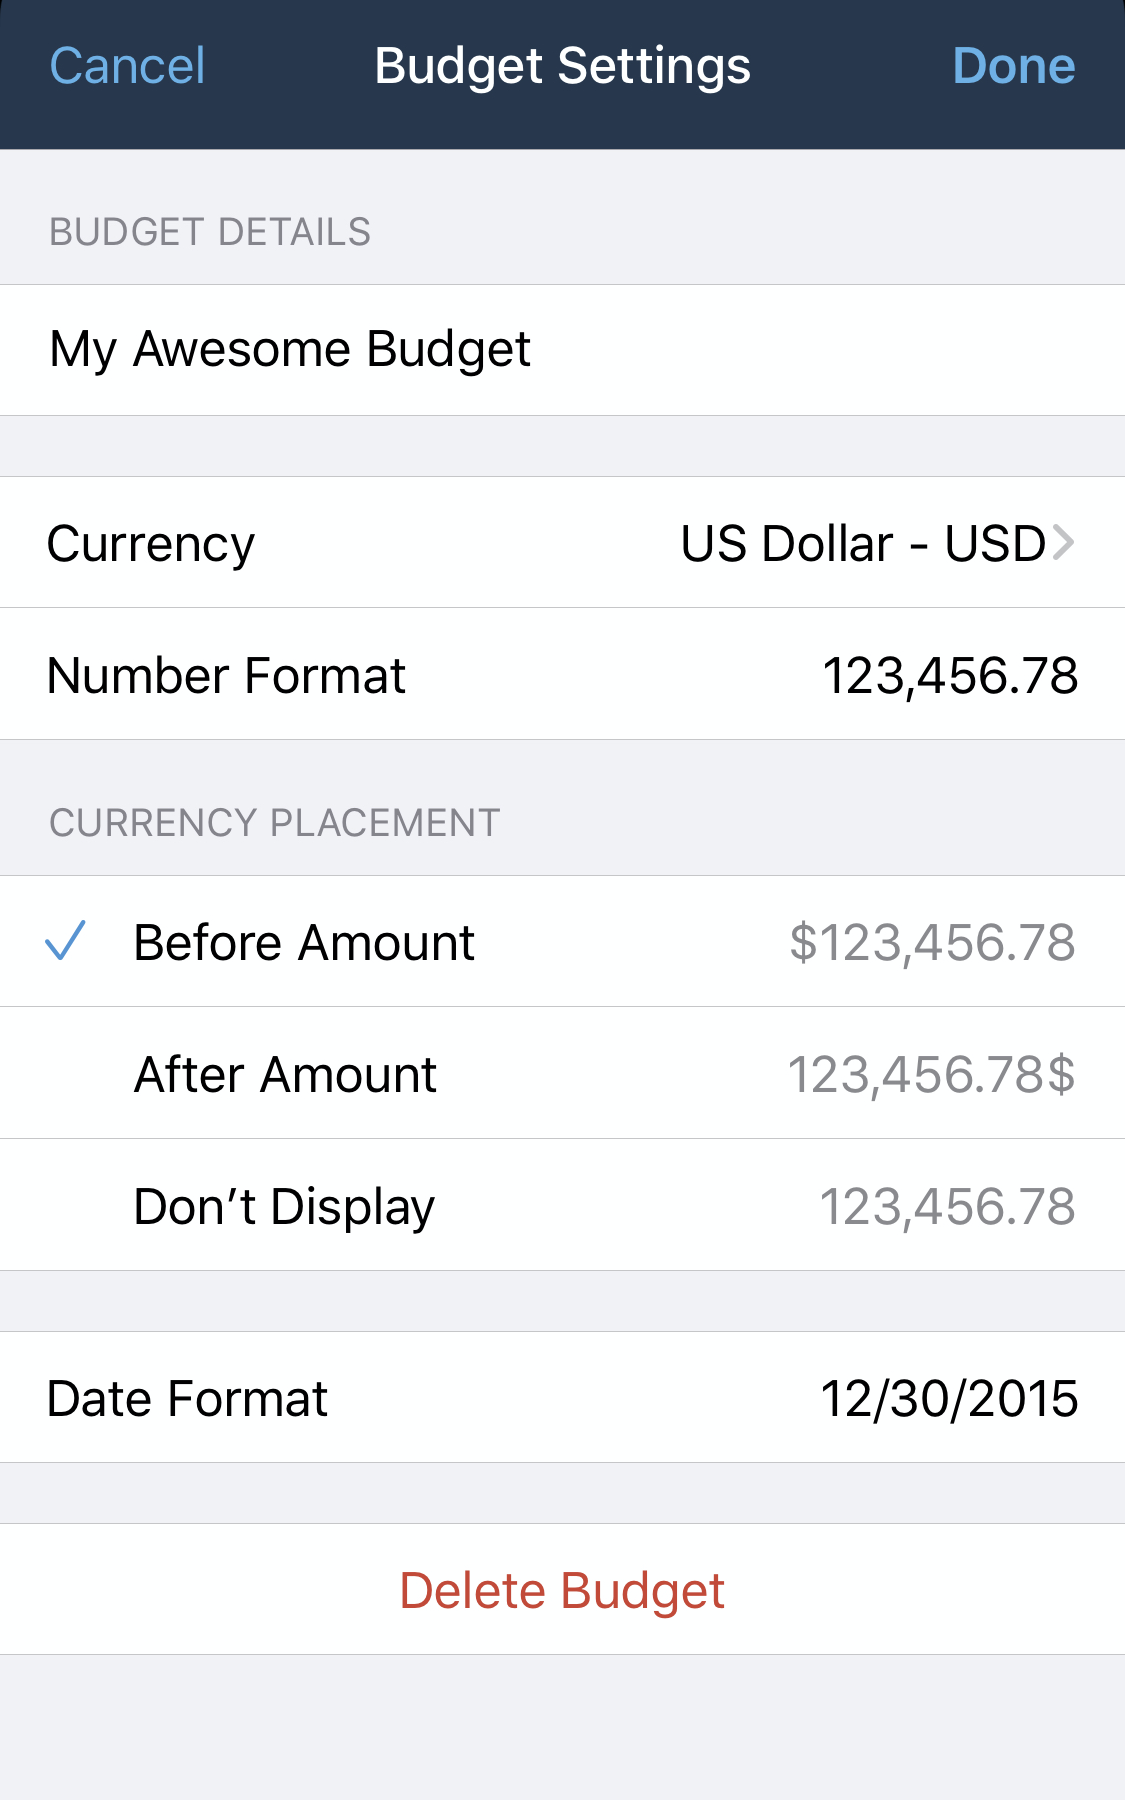 Use Budget Settings to modify the name of your budget, the currency, number format, currency placement, or date format. At the bottom of the screen, you also have the option to delete the open budget.